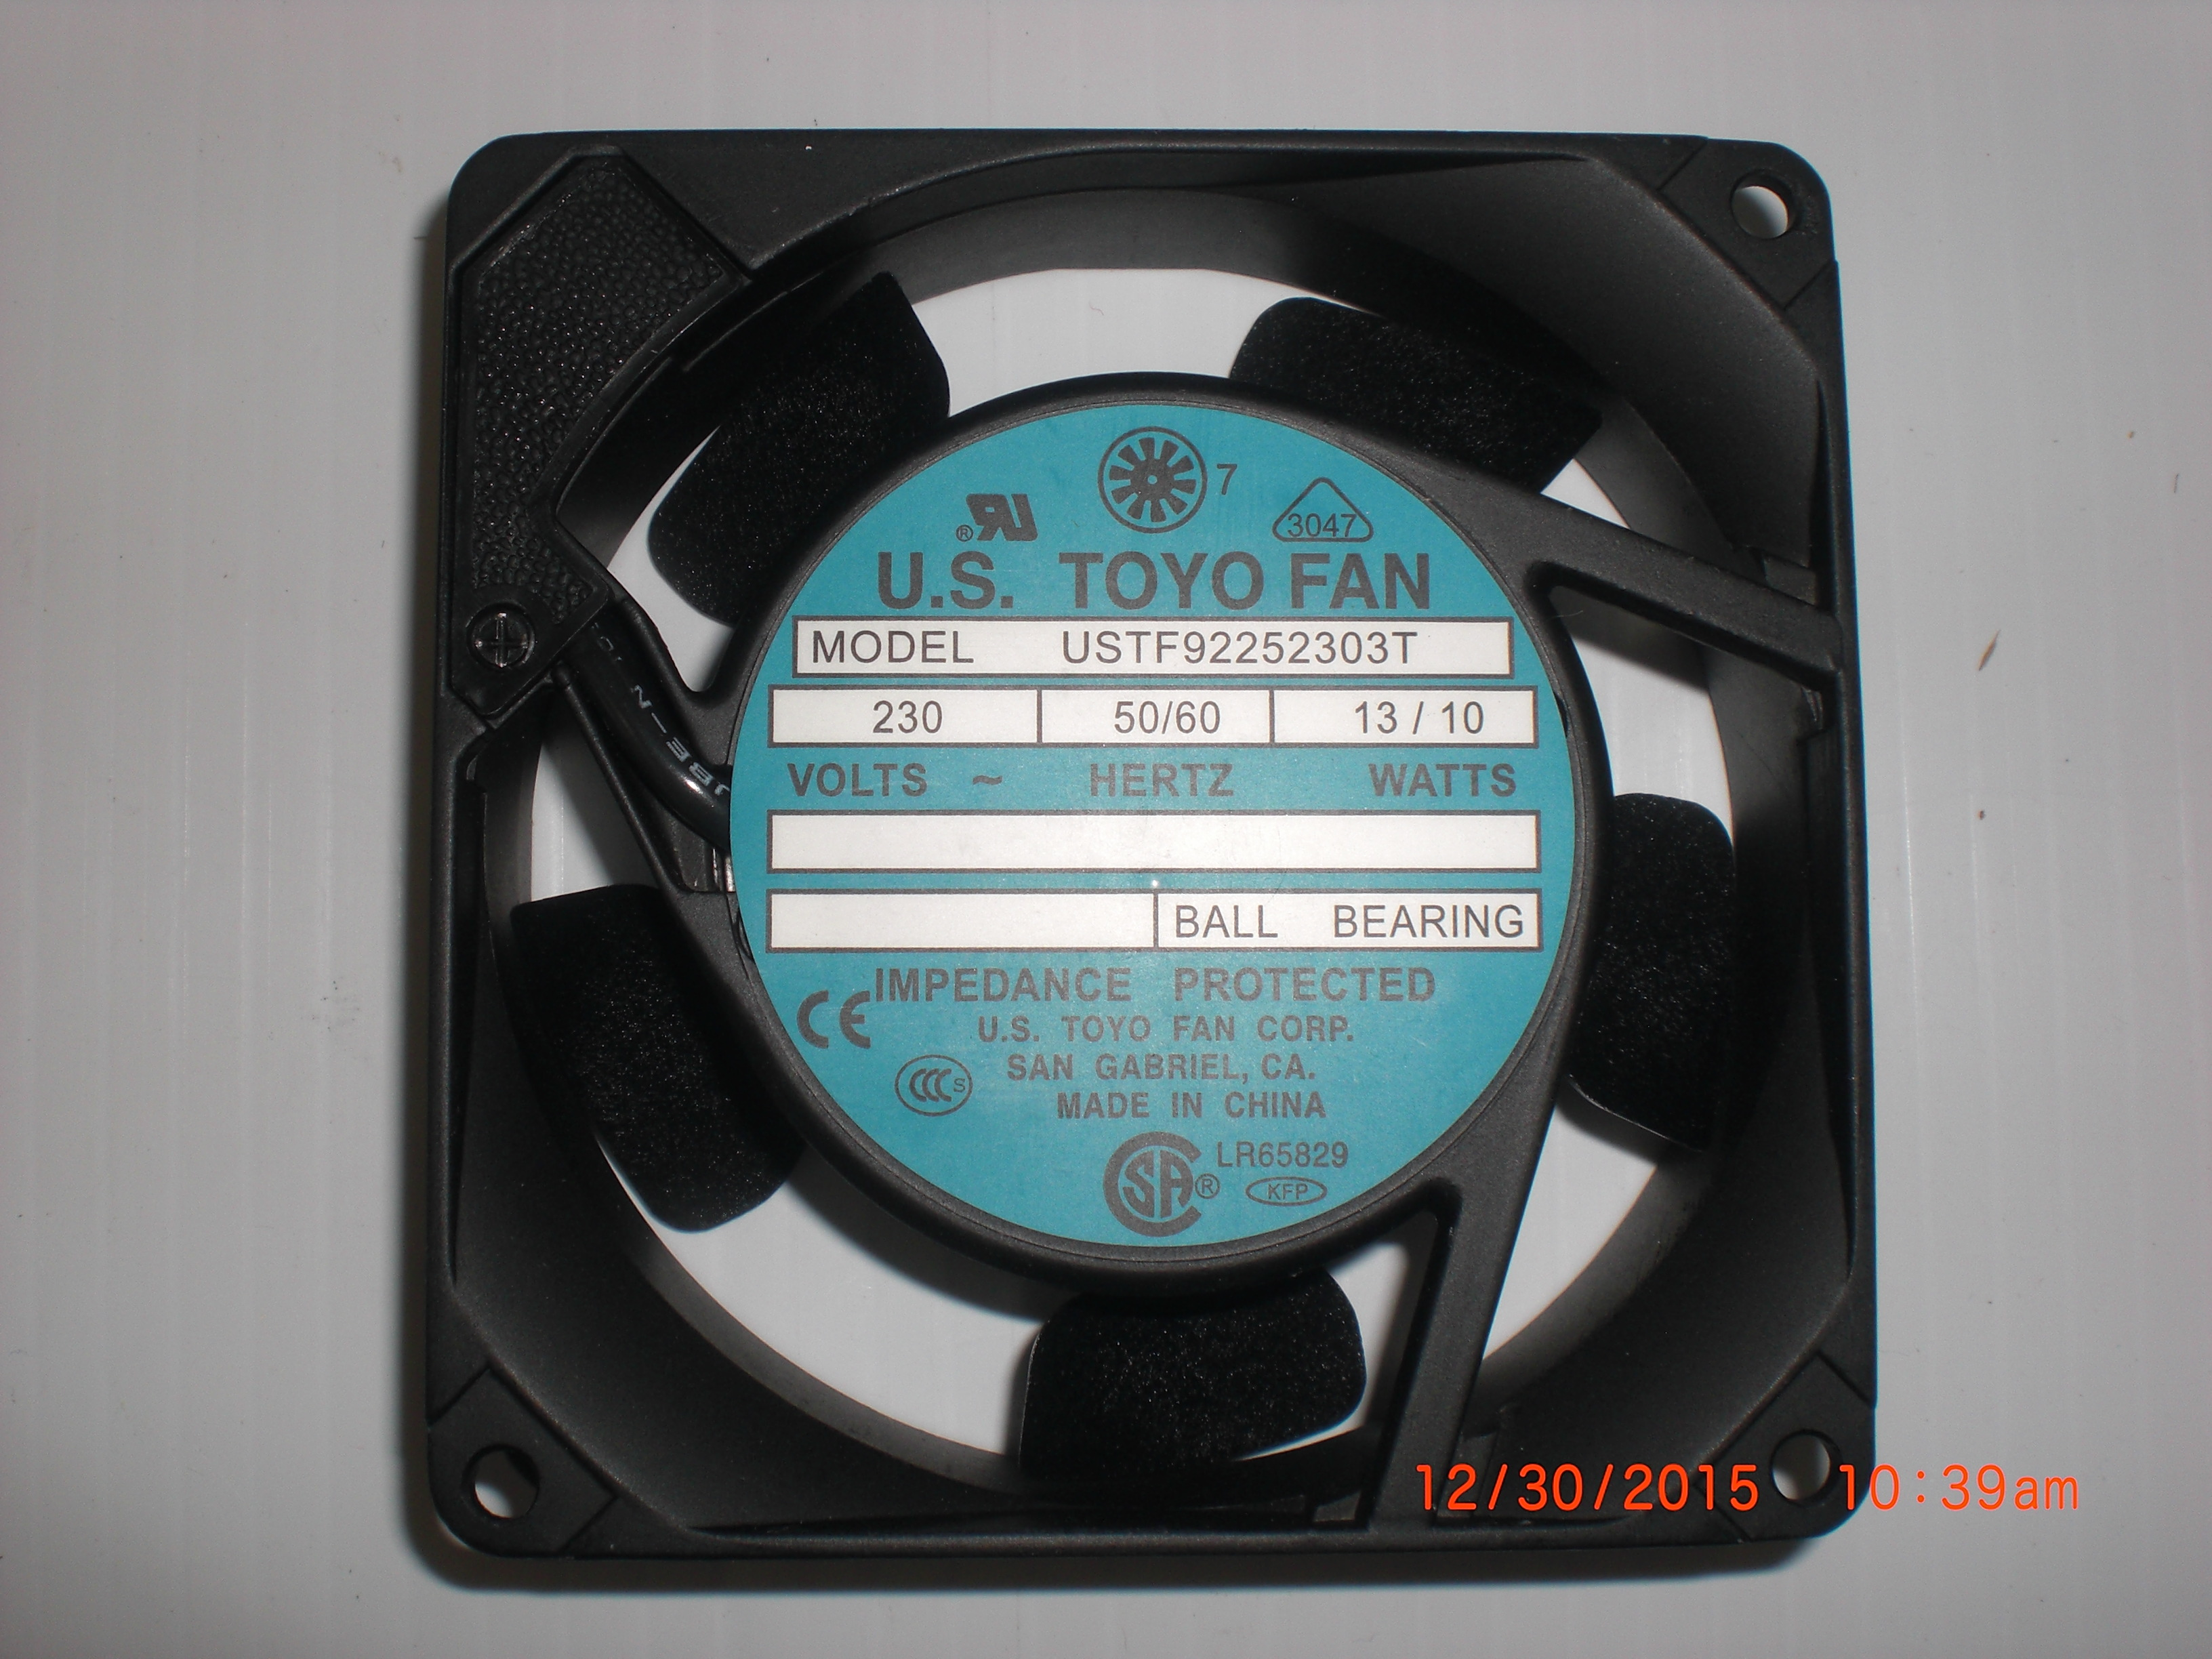 Fan  9 x9mm 230VAC US TOYO FAN USTF92252303T